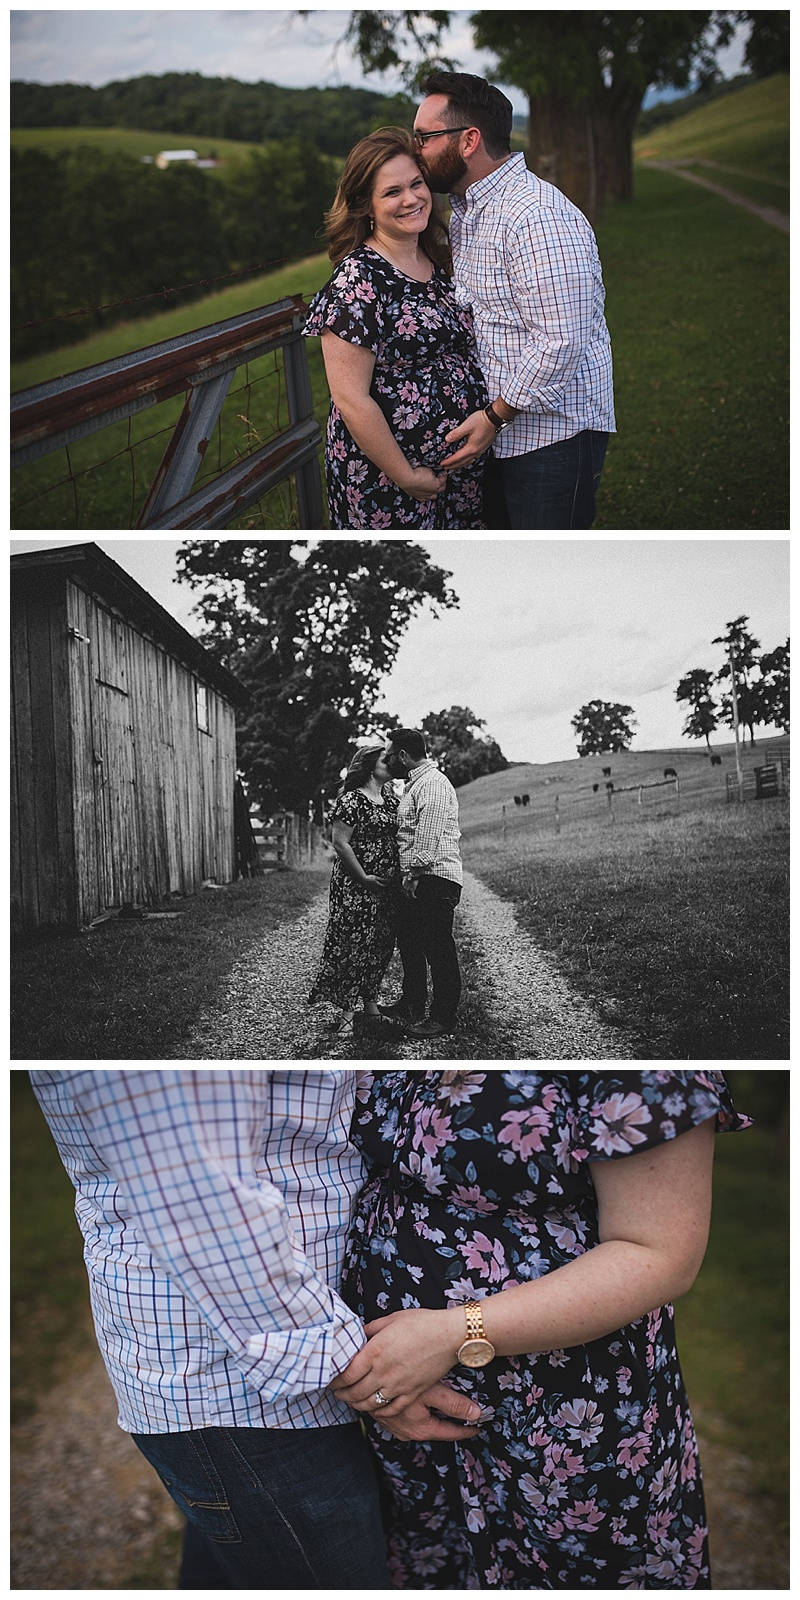 EmilyRogers-southwest-virginia-wedding-photographer_0001.jpg